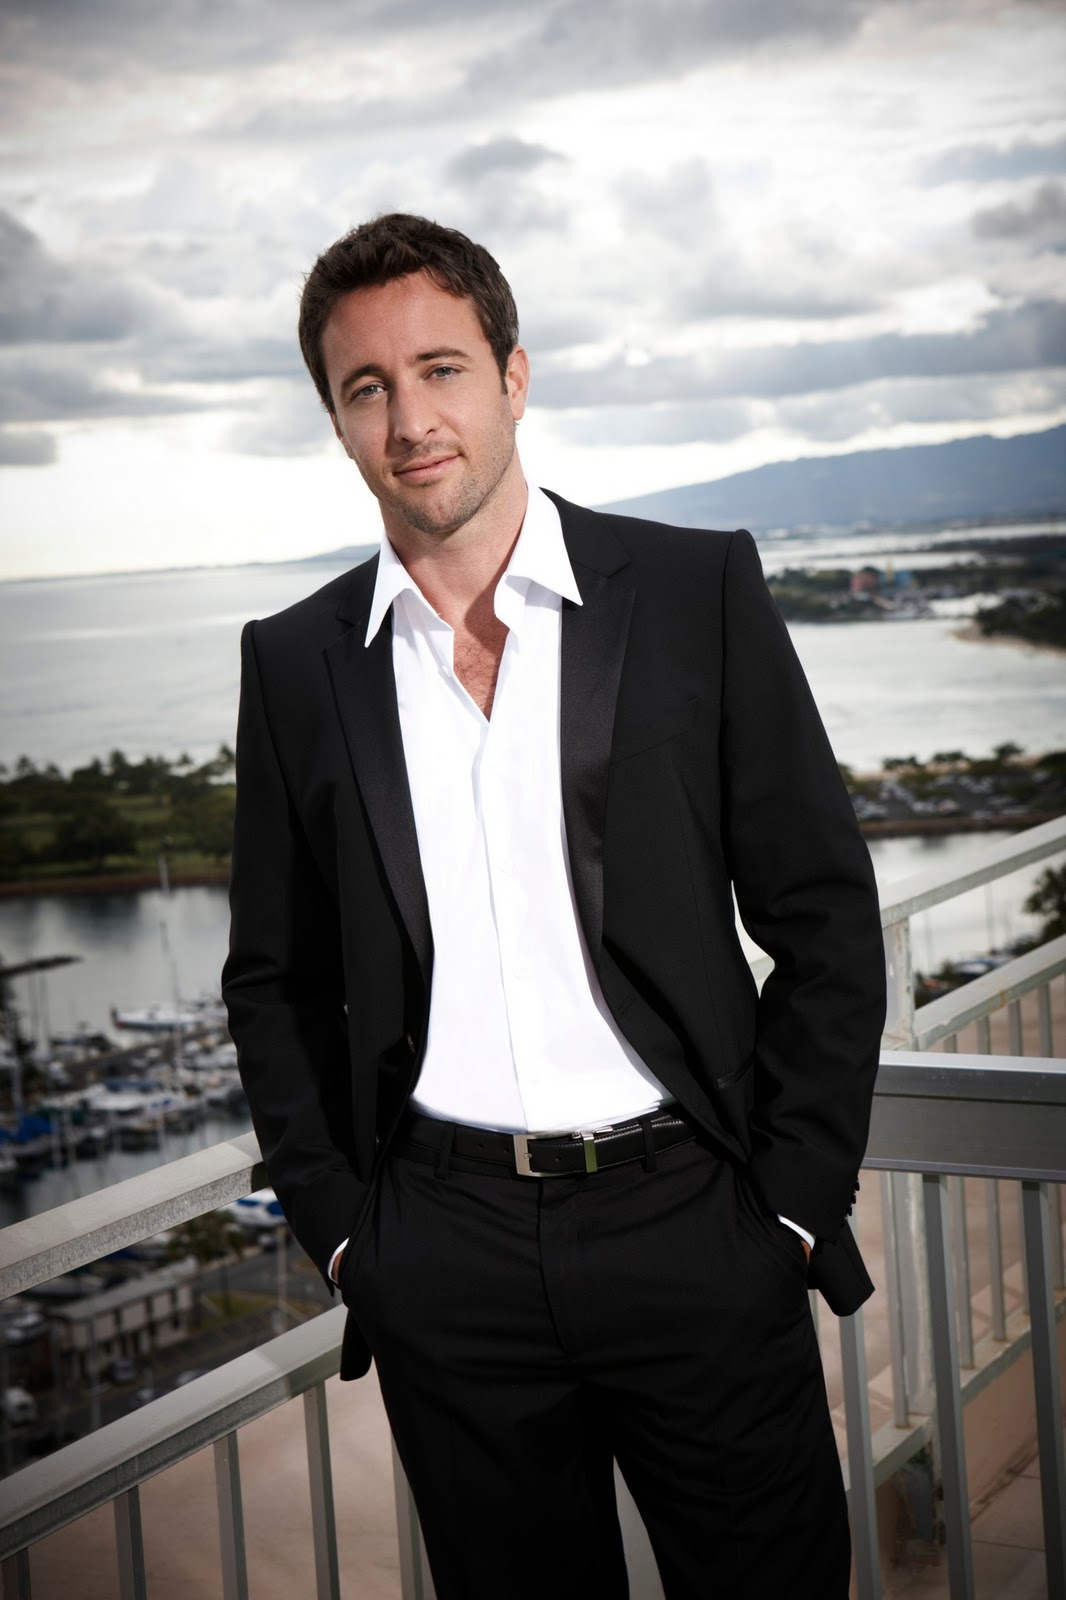 hawaii five o, hawaii 5 0, hawaii 5 O, hawaii Five 0, steve mcgarrett ...